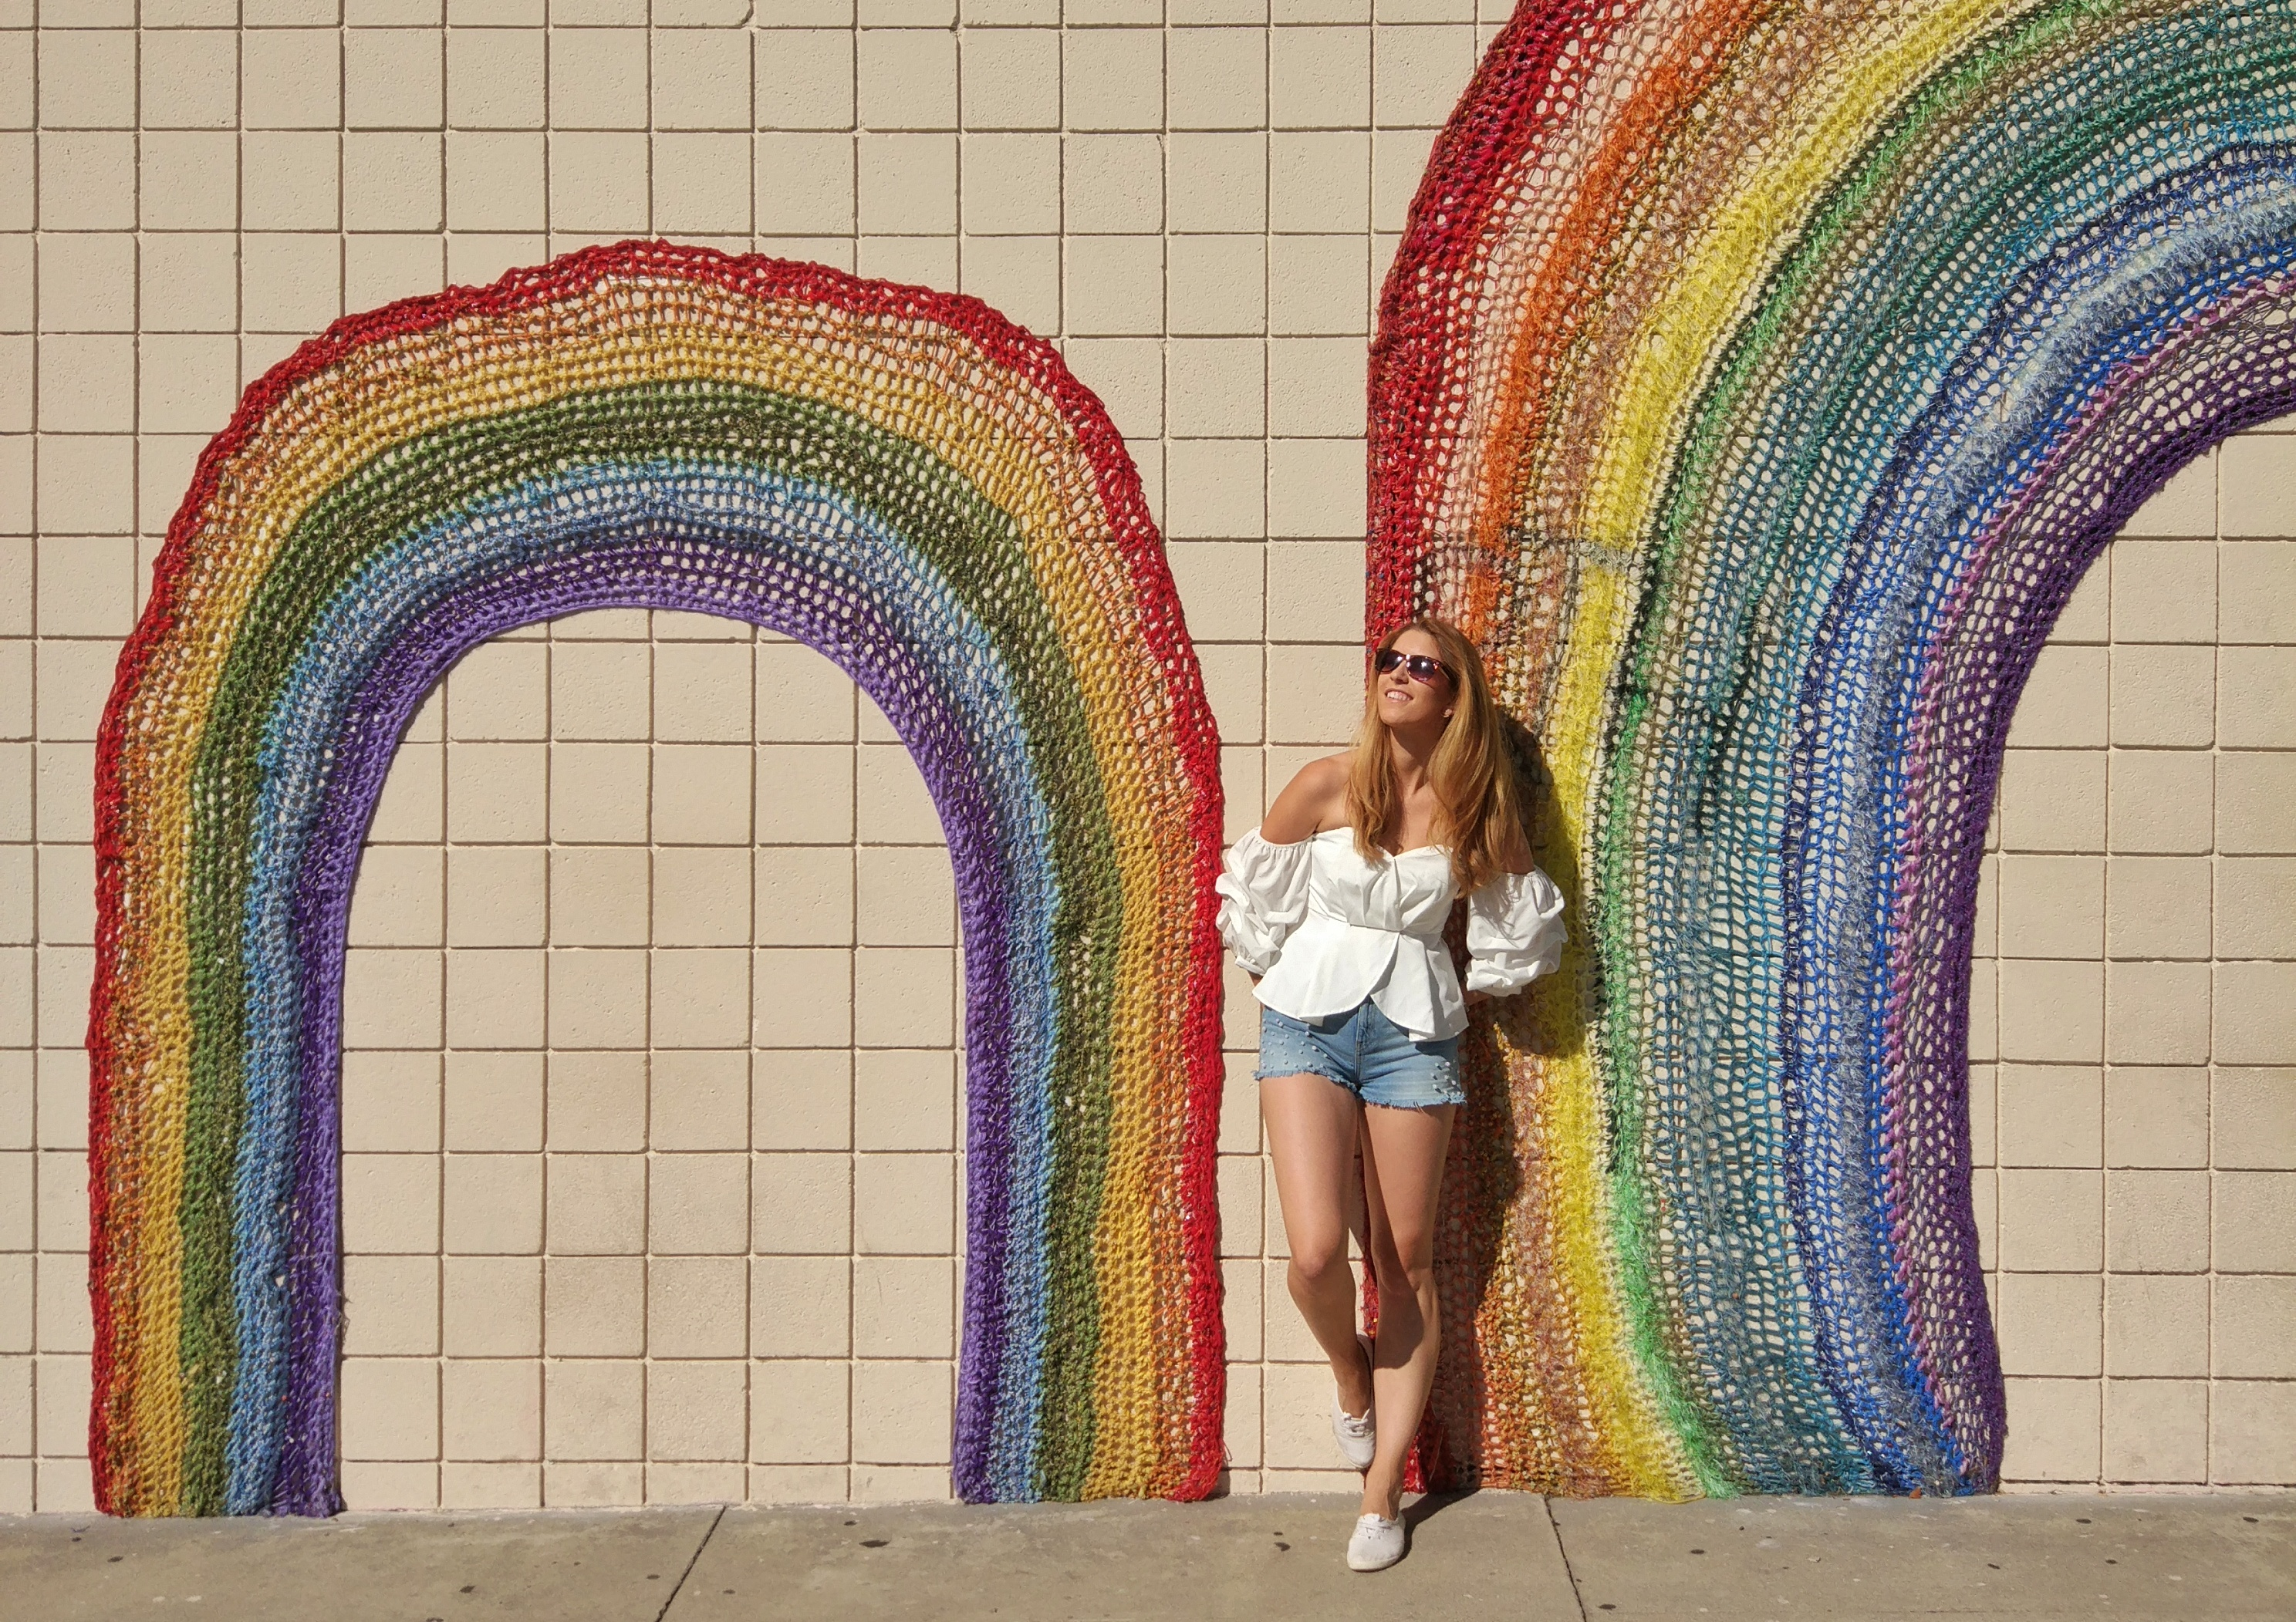 Rainbow Wall Los Angeles